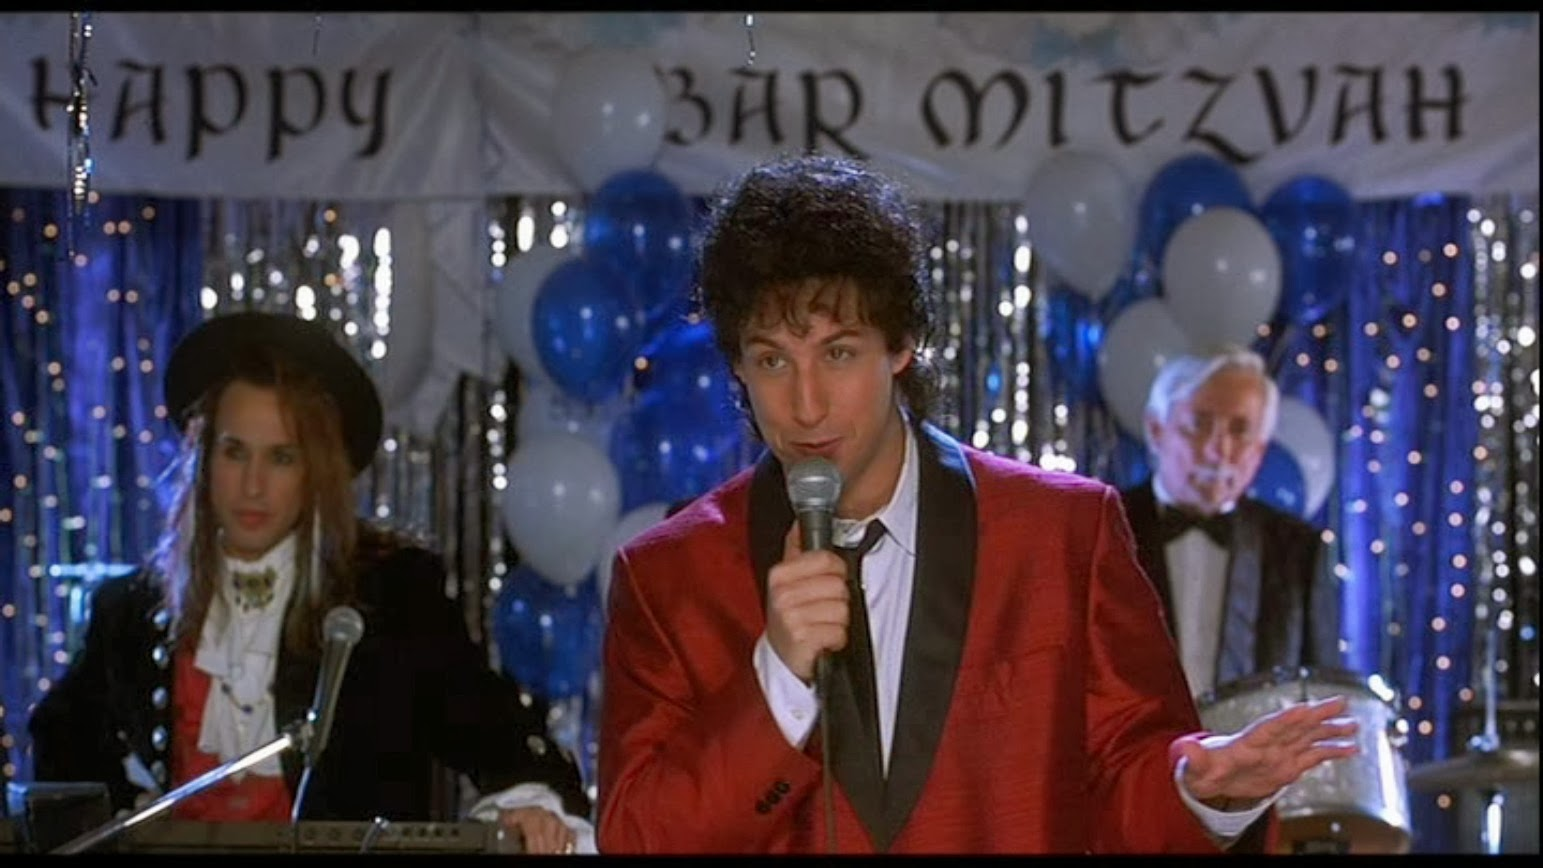 Happyotter THE WEDDING SINGER 1998